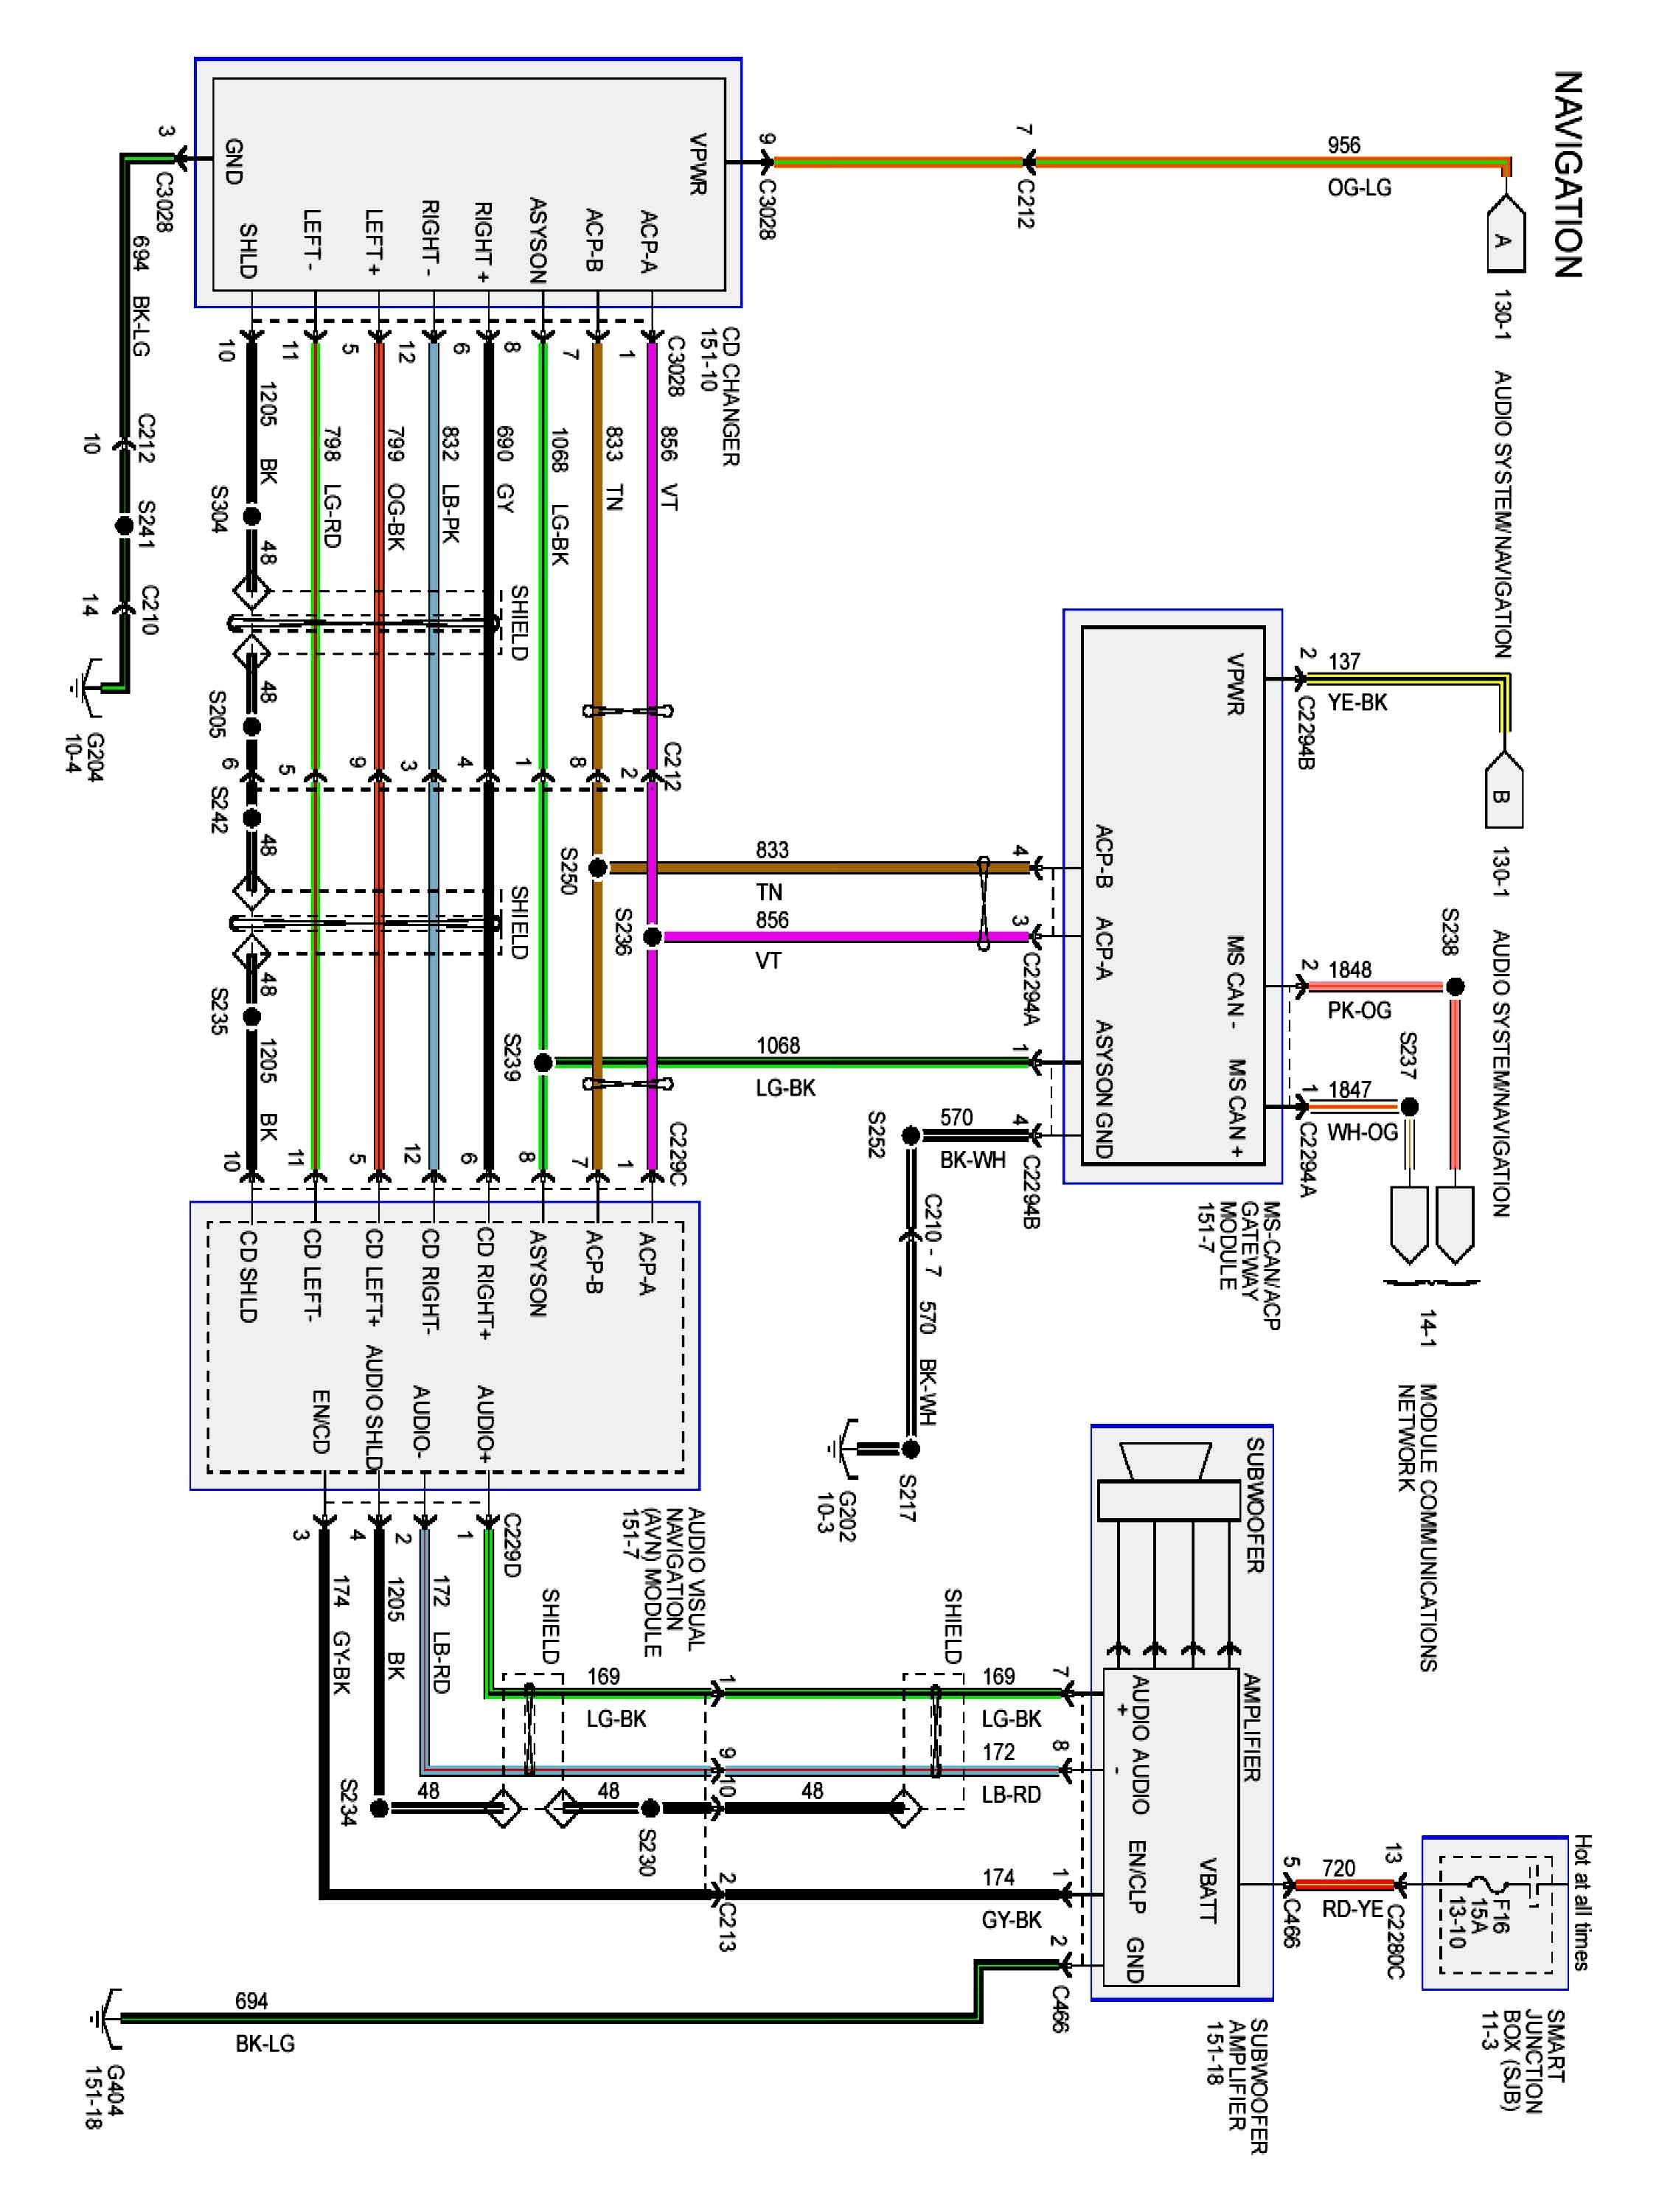 2007 ford Explorer Wiring Diagram 2006 ford Ranger Wiring Diagram Blurts Of 2007 ford Explorer Wiring Diagram